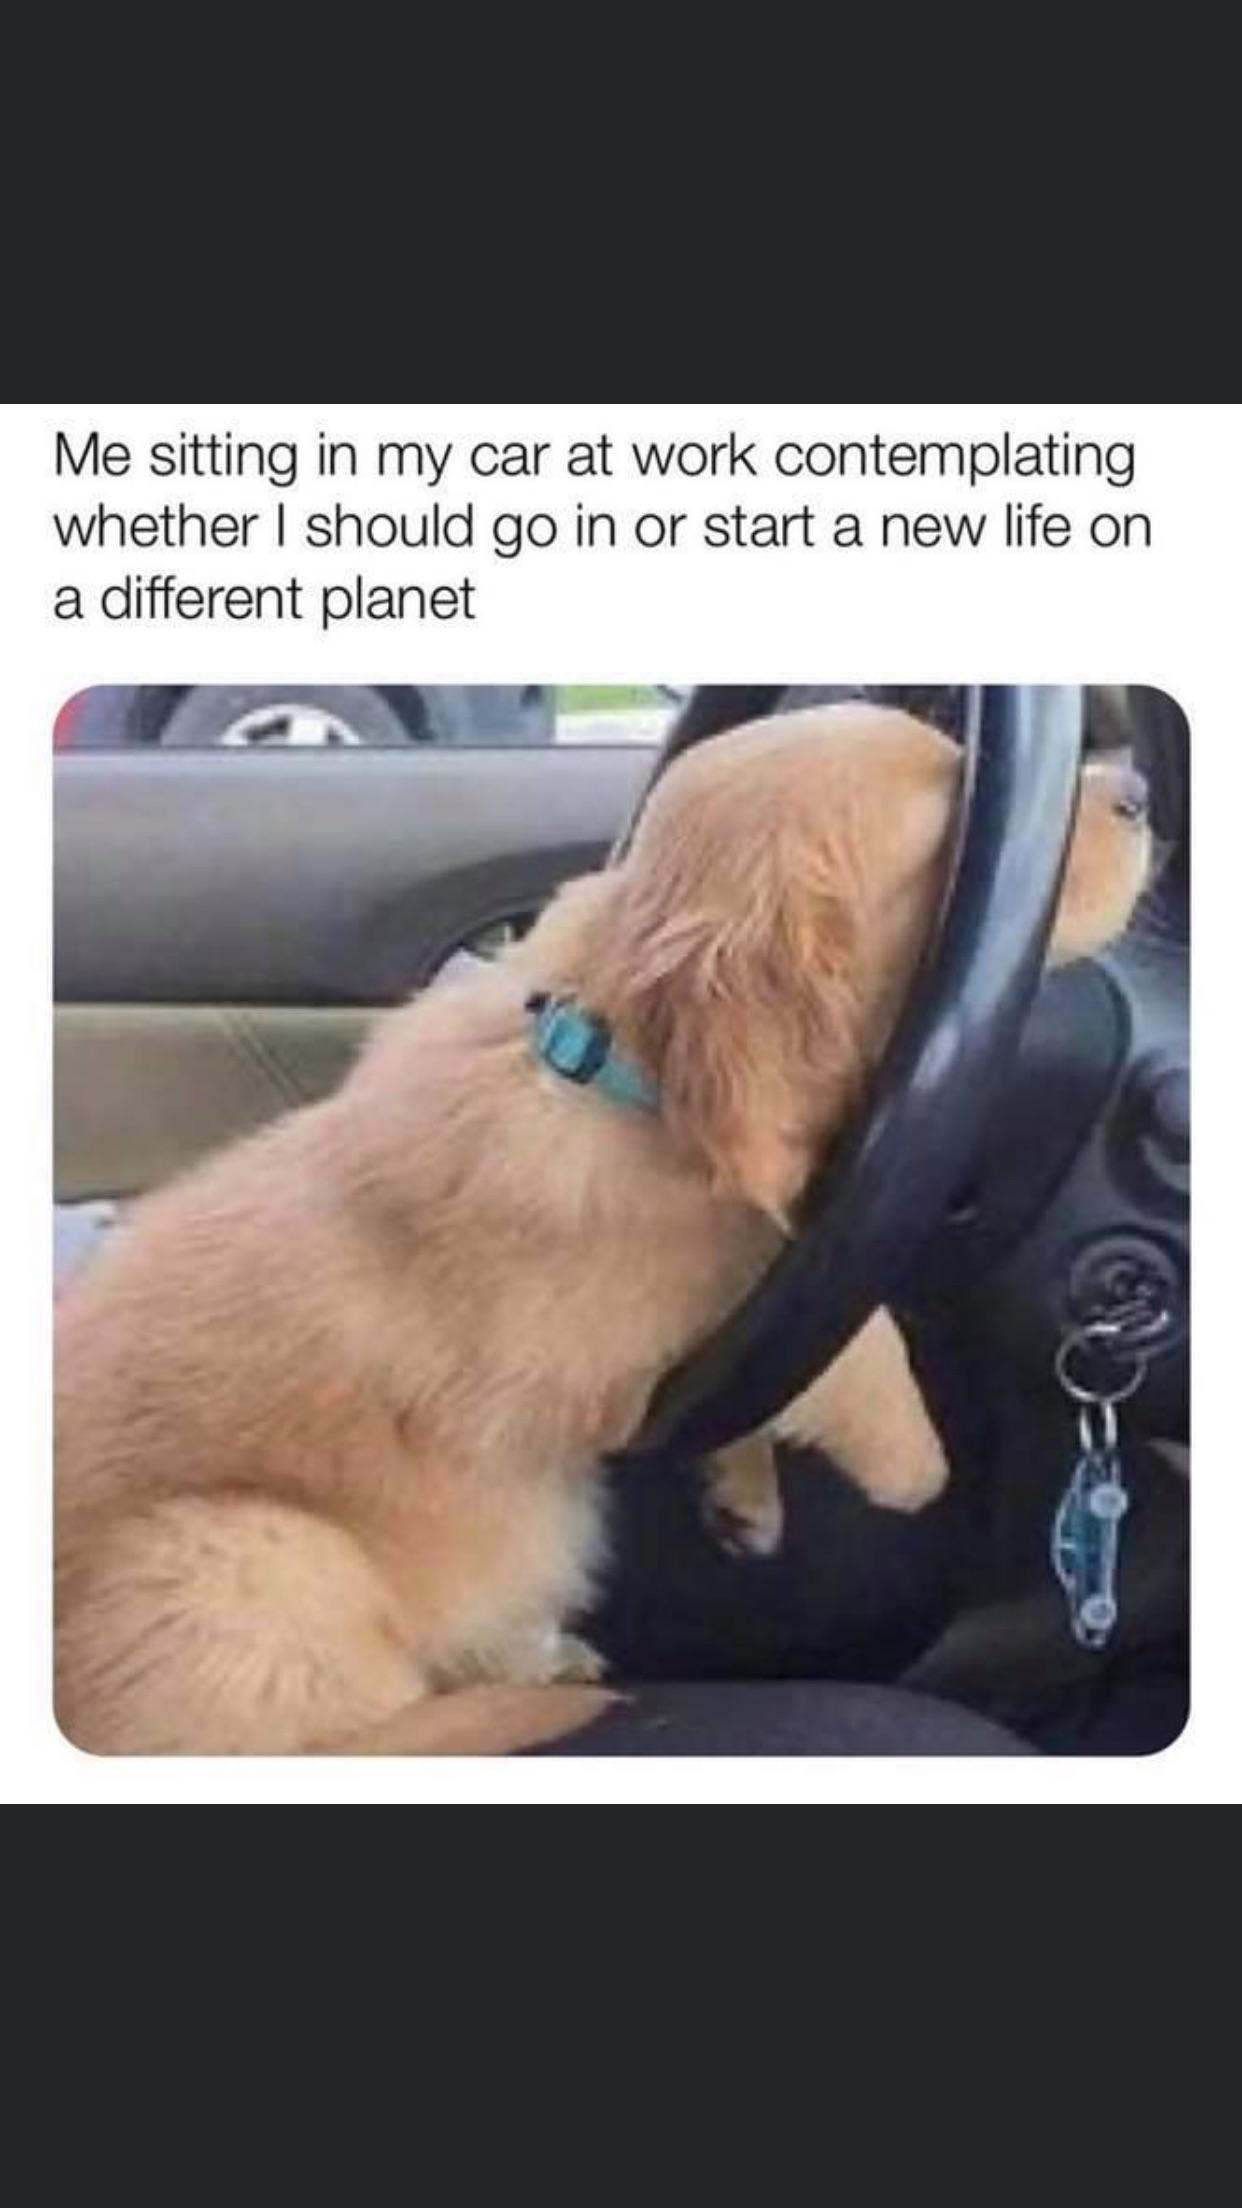 [image] As cute as this puppy is, this isn't what I aspire to be